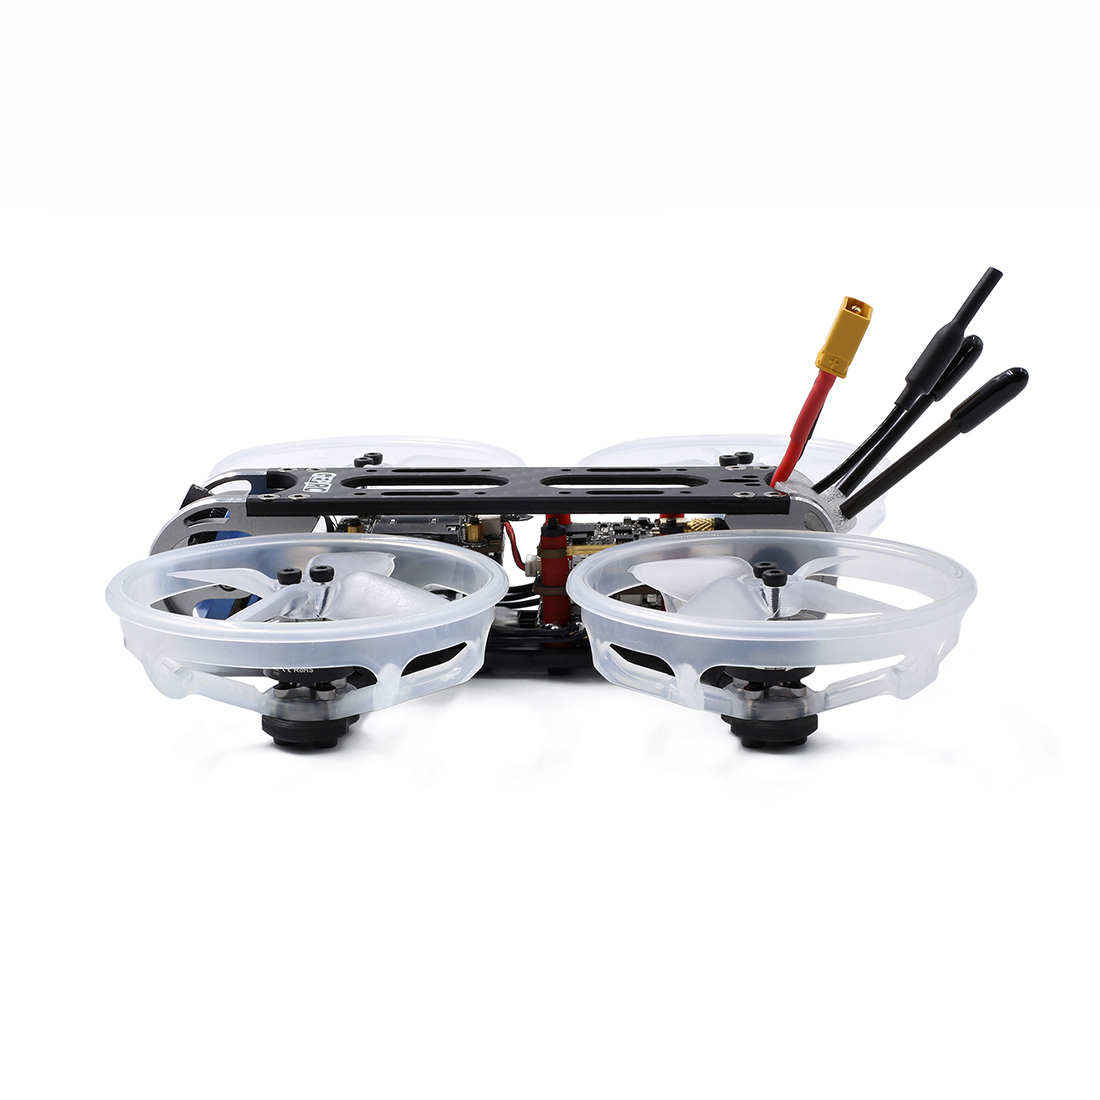 Image 3 - GEPRC CinePro 4K BNF/PNP FPV Racing Drone 4S Compatiable with F722/F405 Flight Controller 115mm 5.8g 48CH 500mW VTX-in Parts & Accessories from Toys & Hobbies